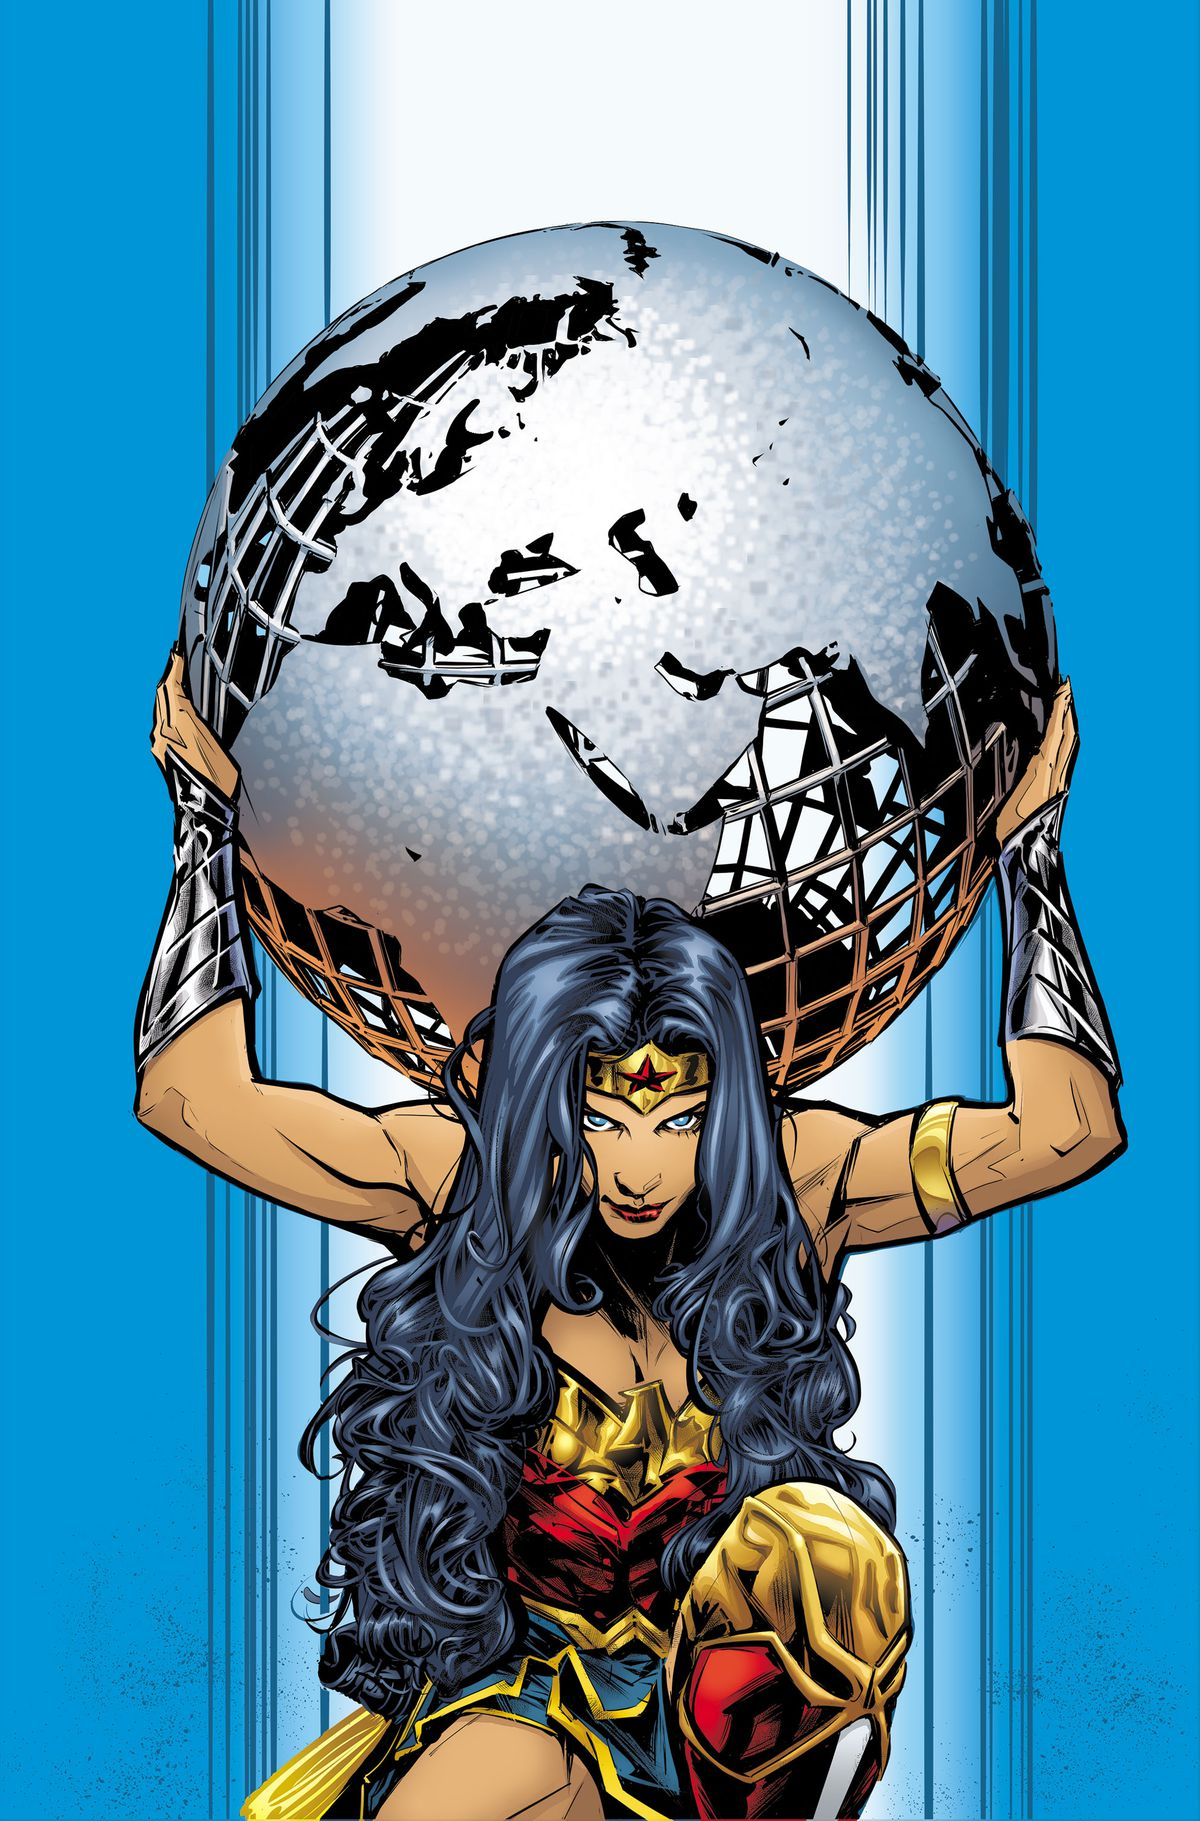 Wonder Woman holds a metal-wrought globe of the earth on her shoulders like Atlas, on the cover of Wonder Woman #750, DC Comics (2020).